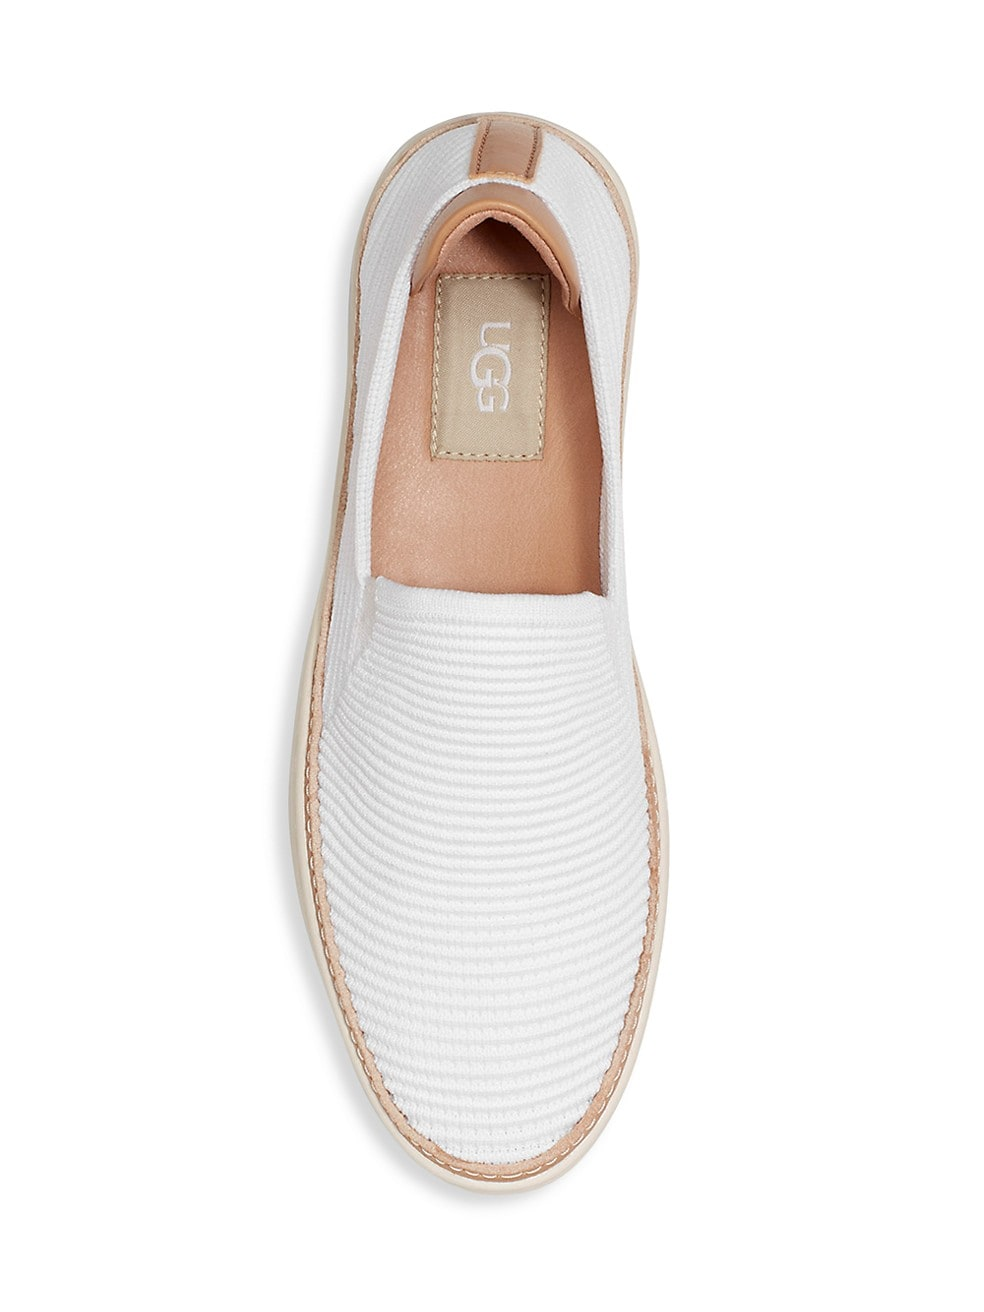 UGG - SAMMY IN WHITE RIB KNIT